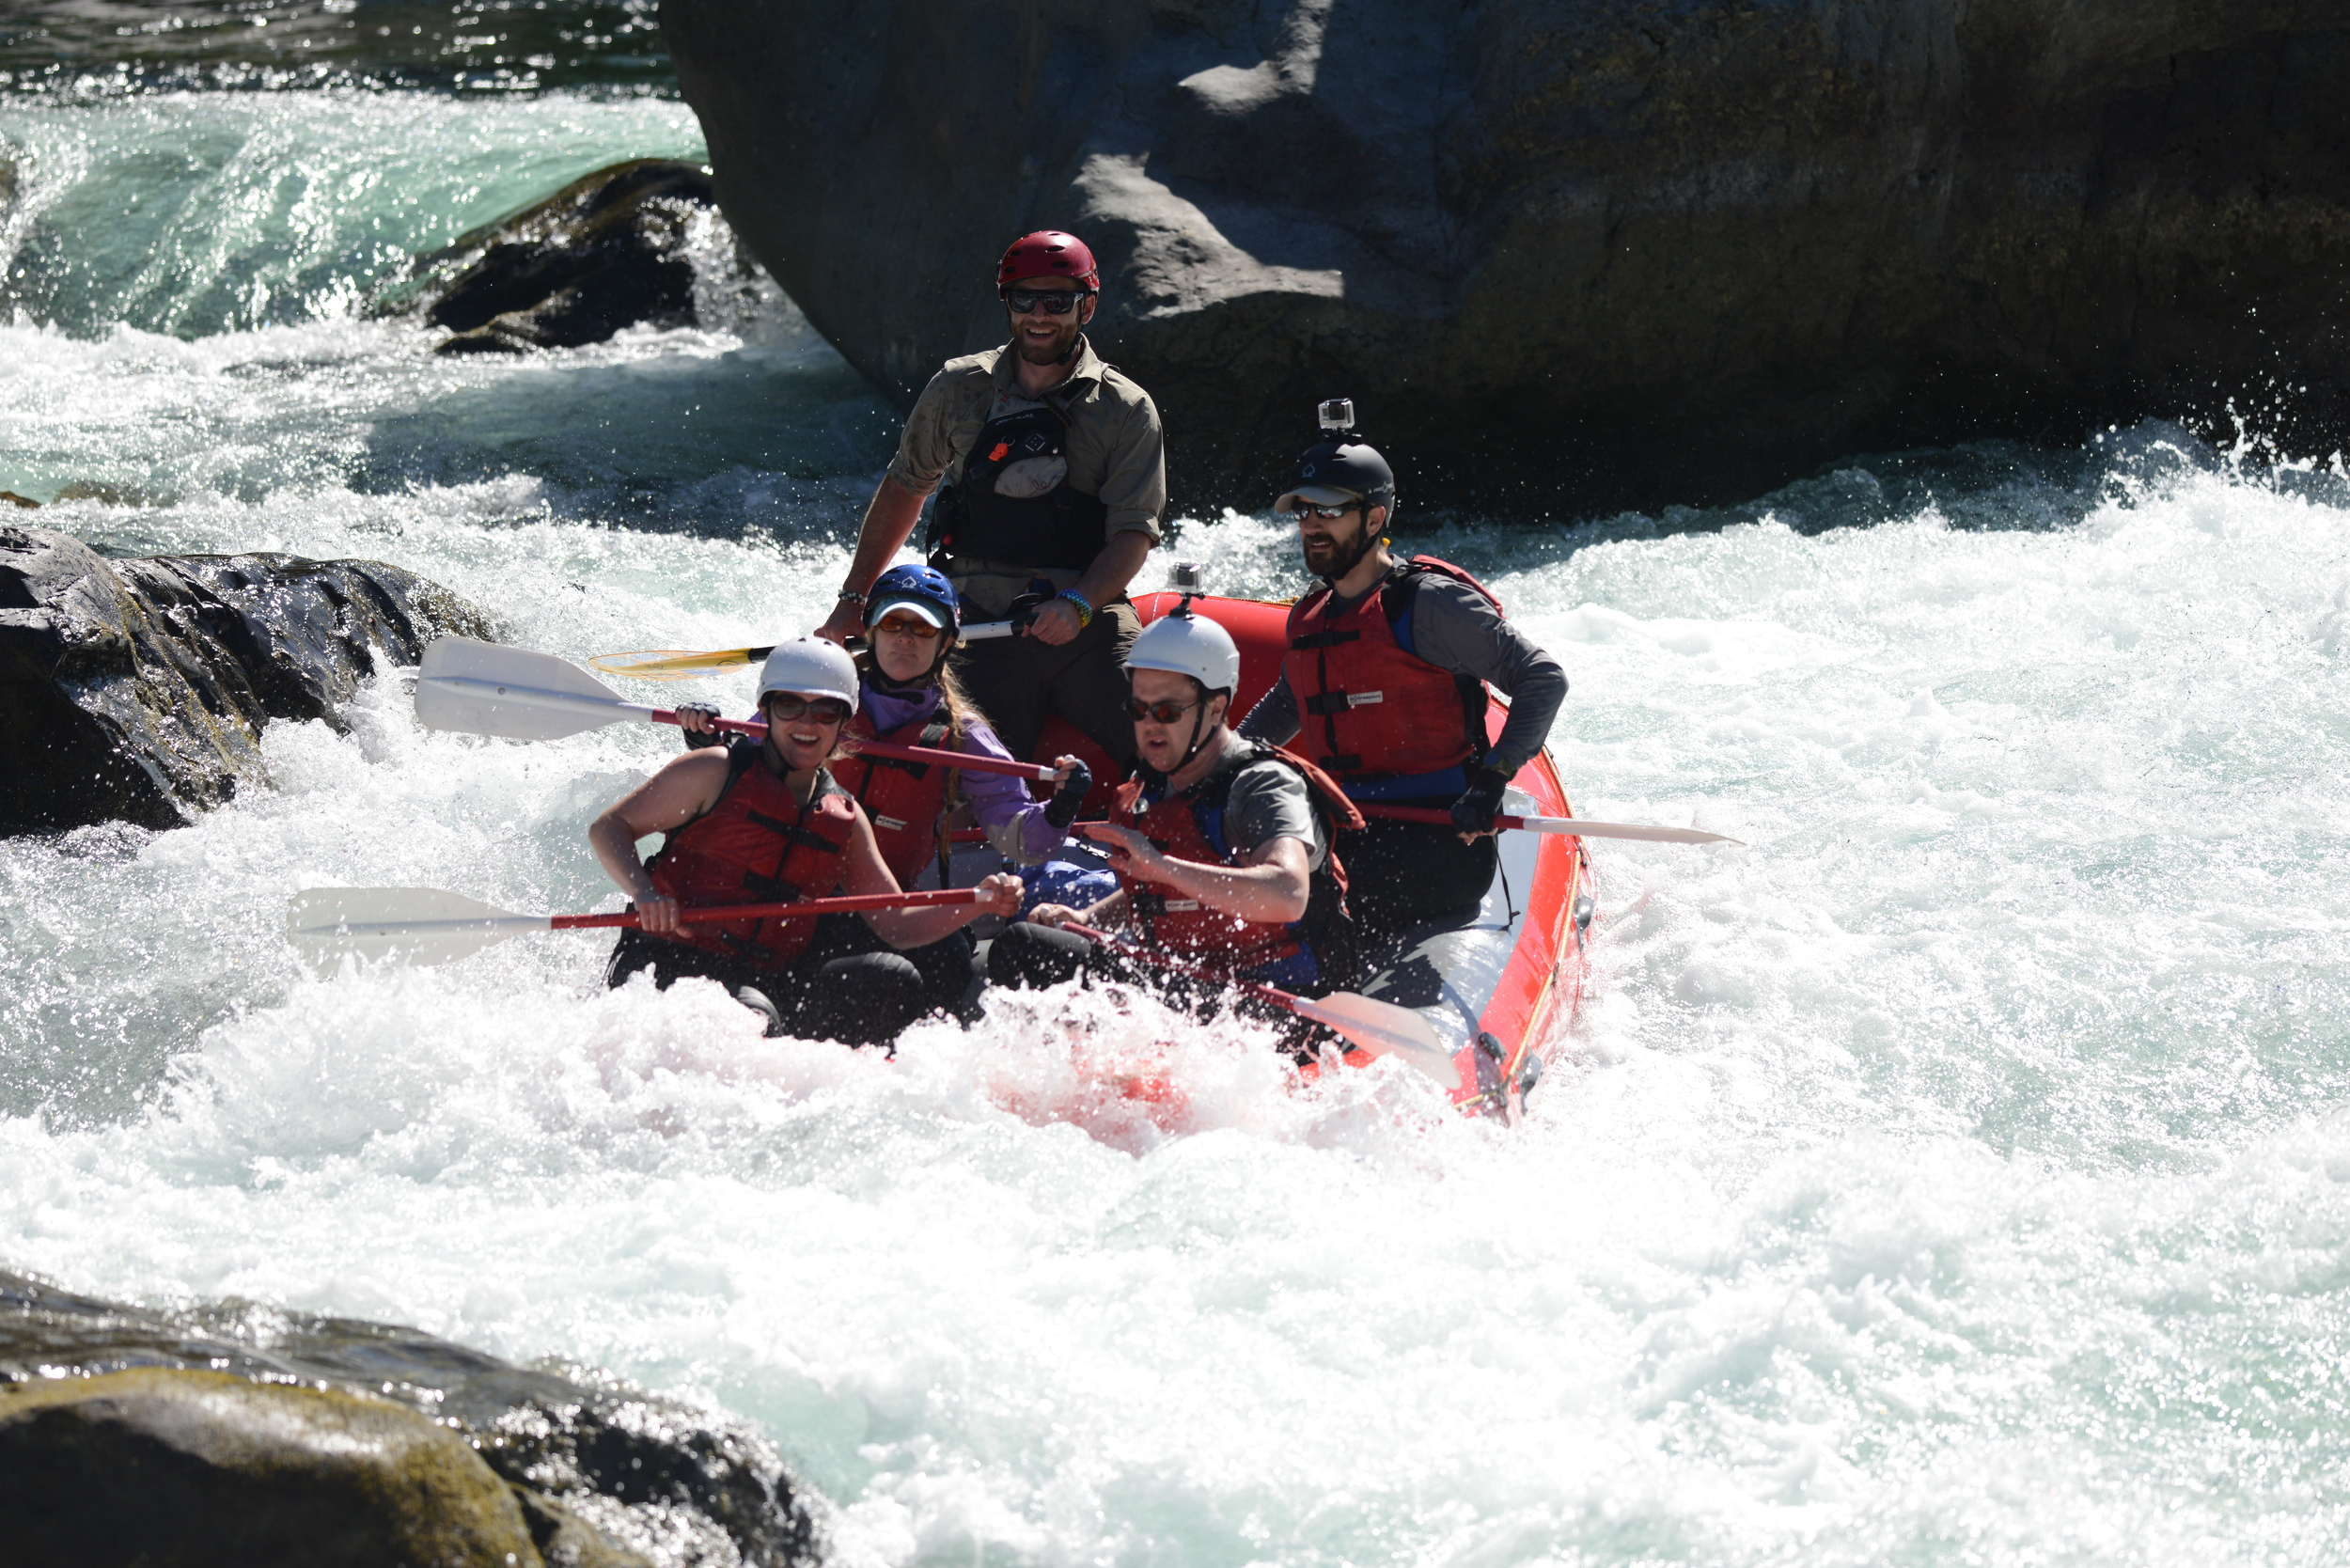 Brandon Steele (lead guide) navigating Boulder Drop successfully at very low water. note: skykomish river.